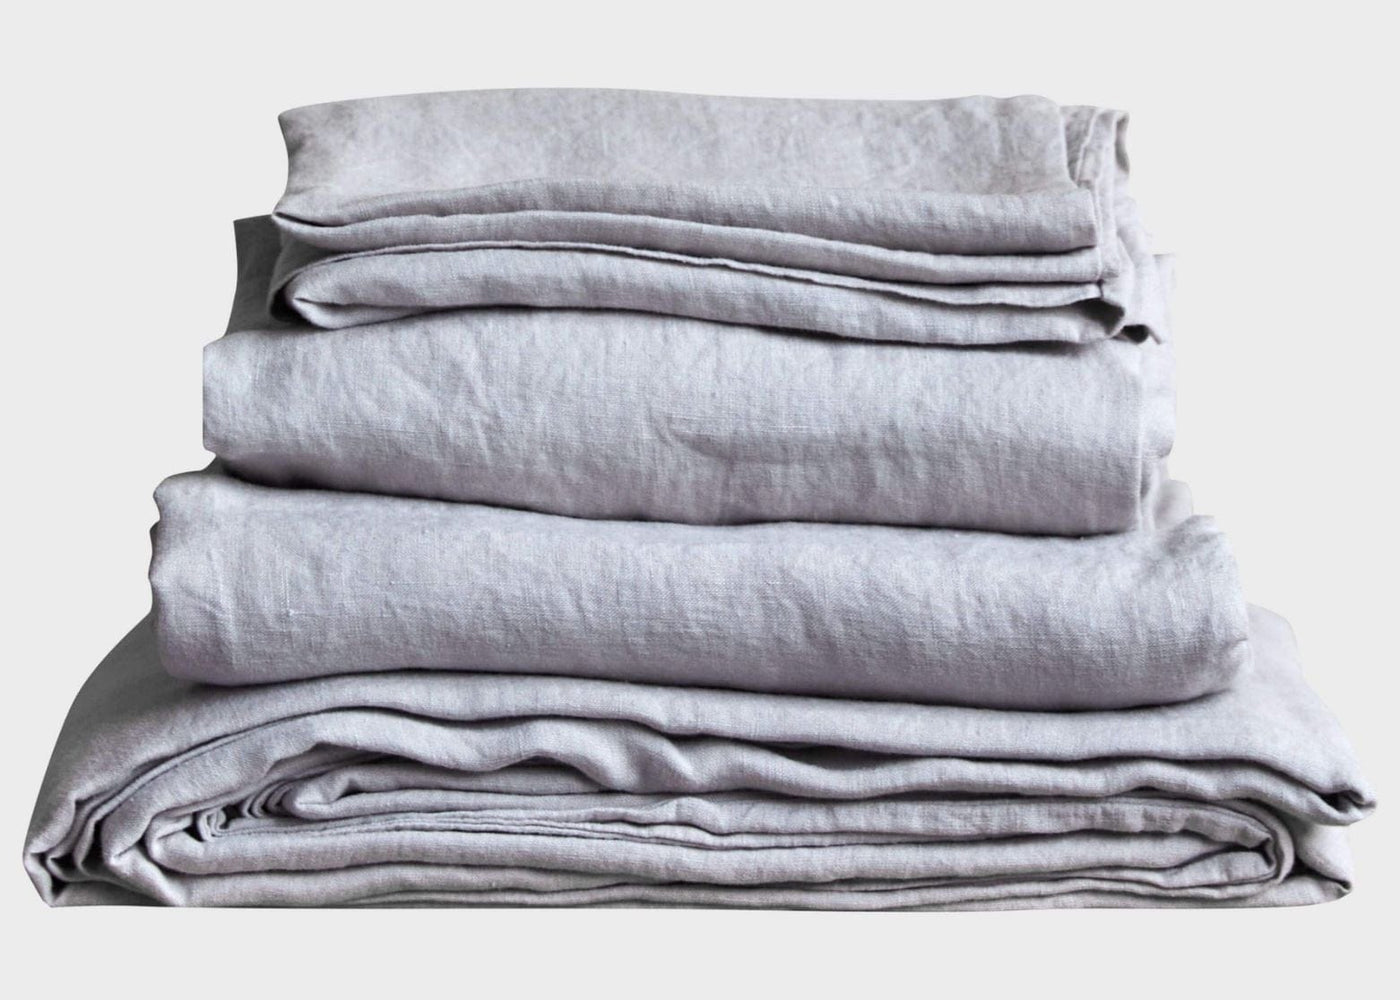 Stonewashed Linen Bed Bundle - Sand